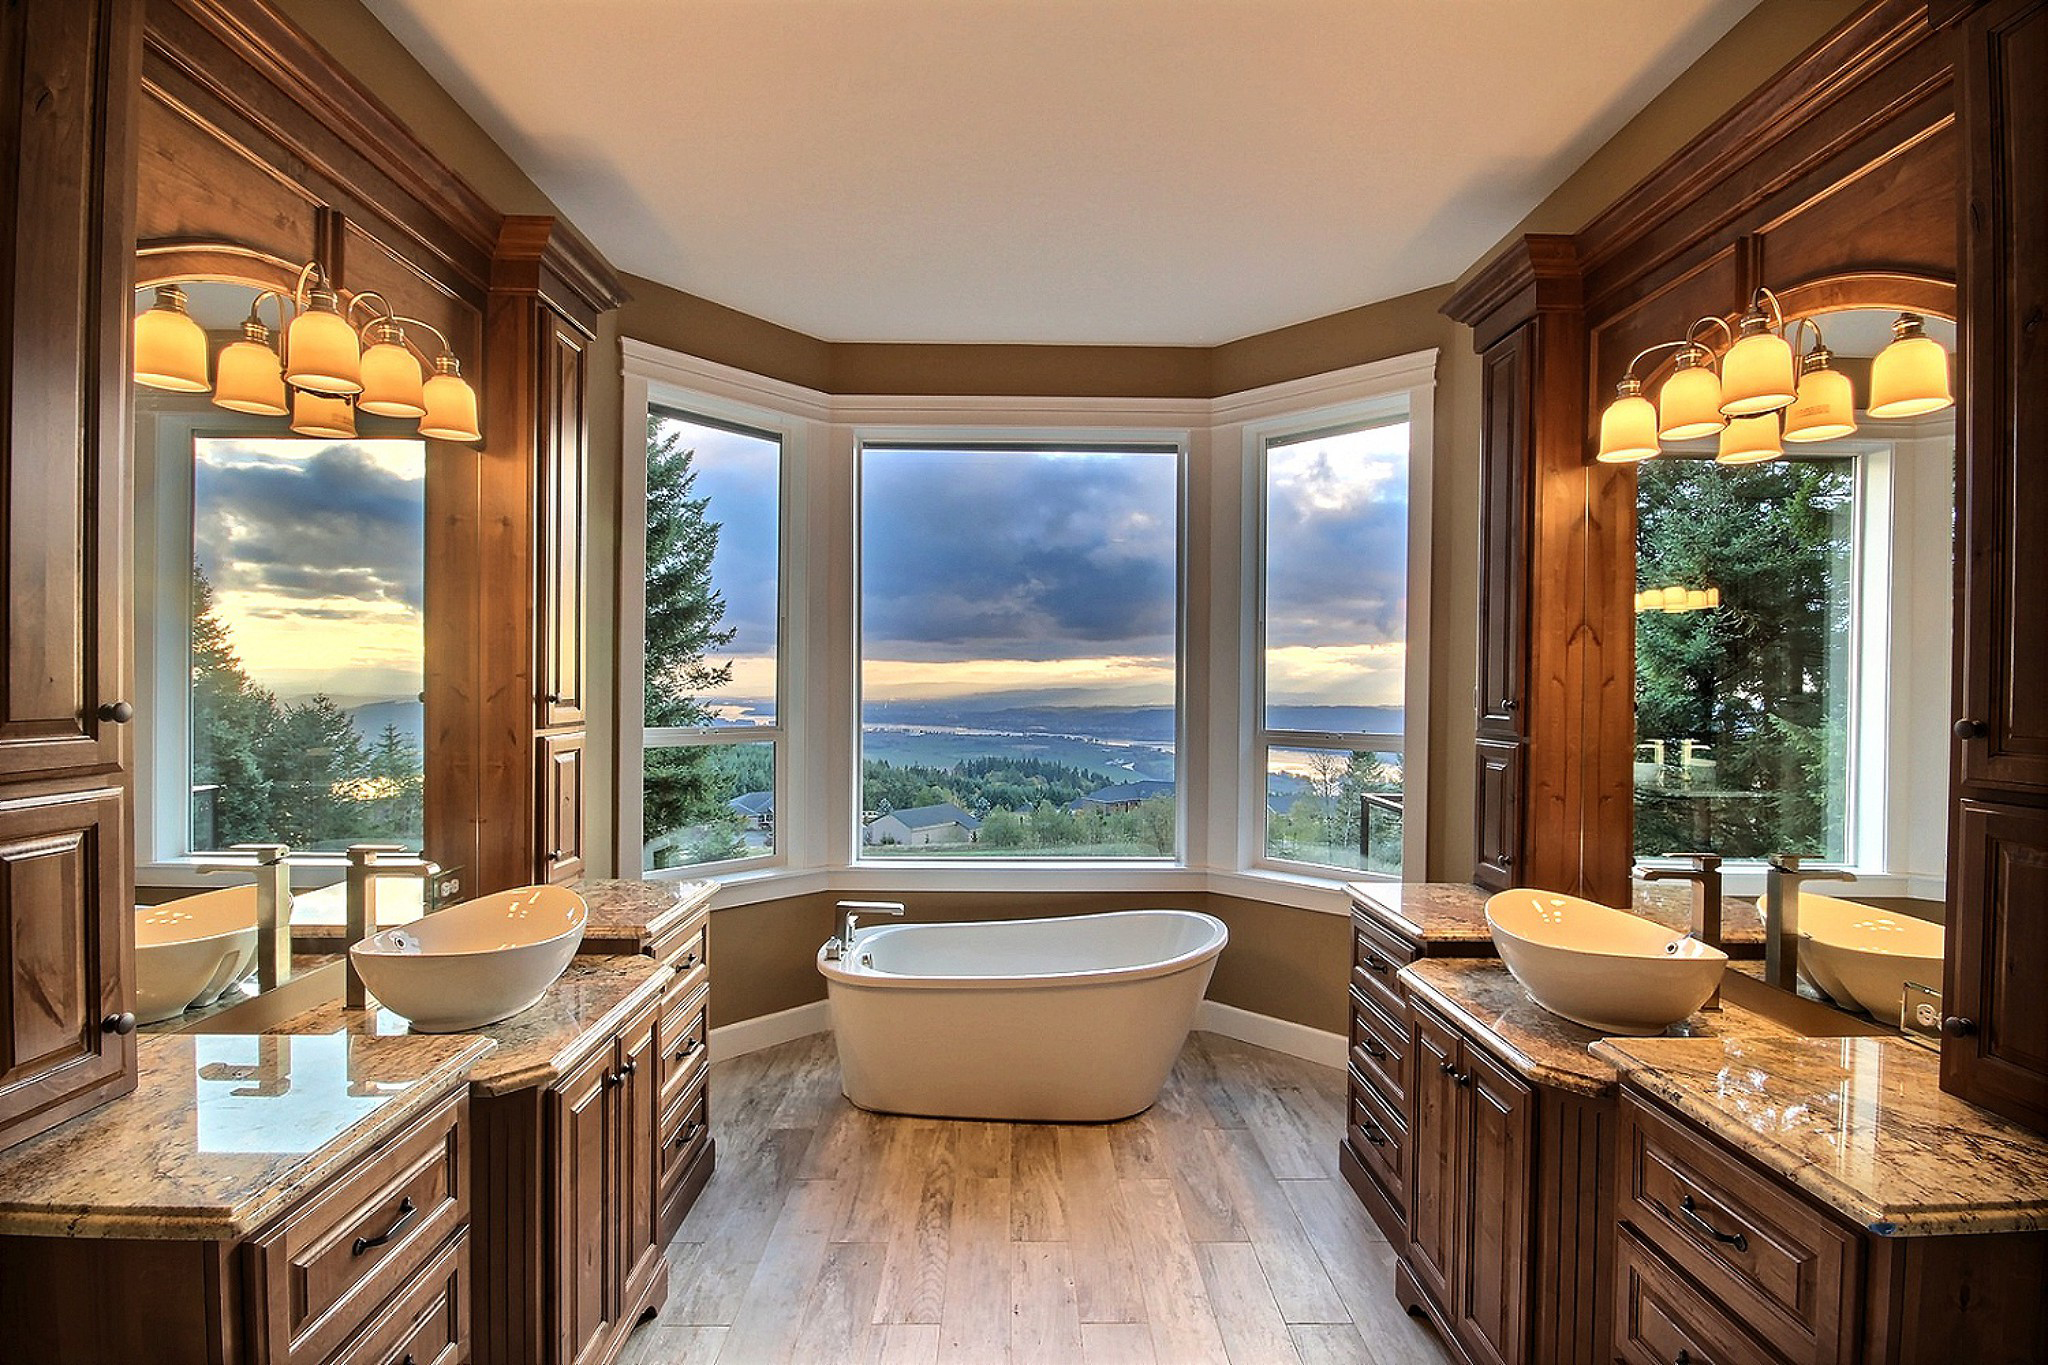 Serene and luxurious mater bathroom en suite